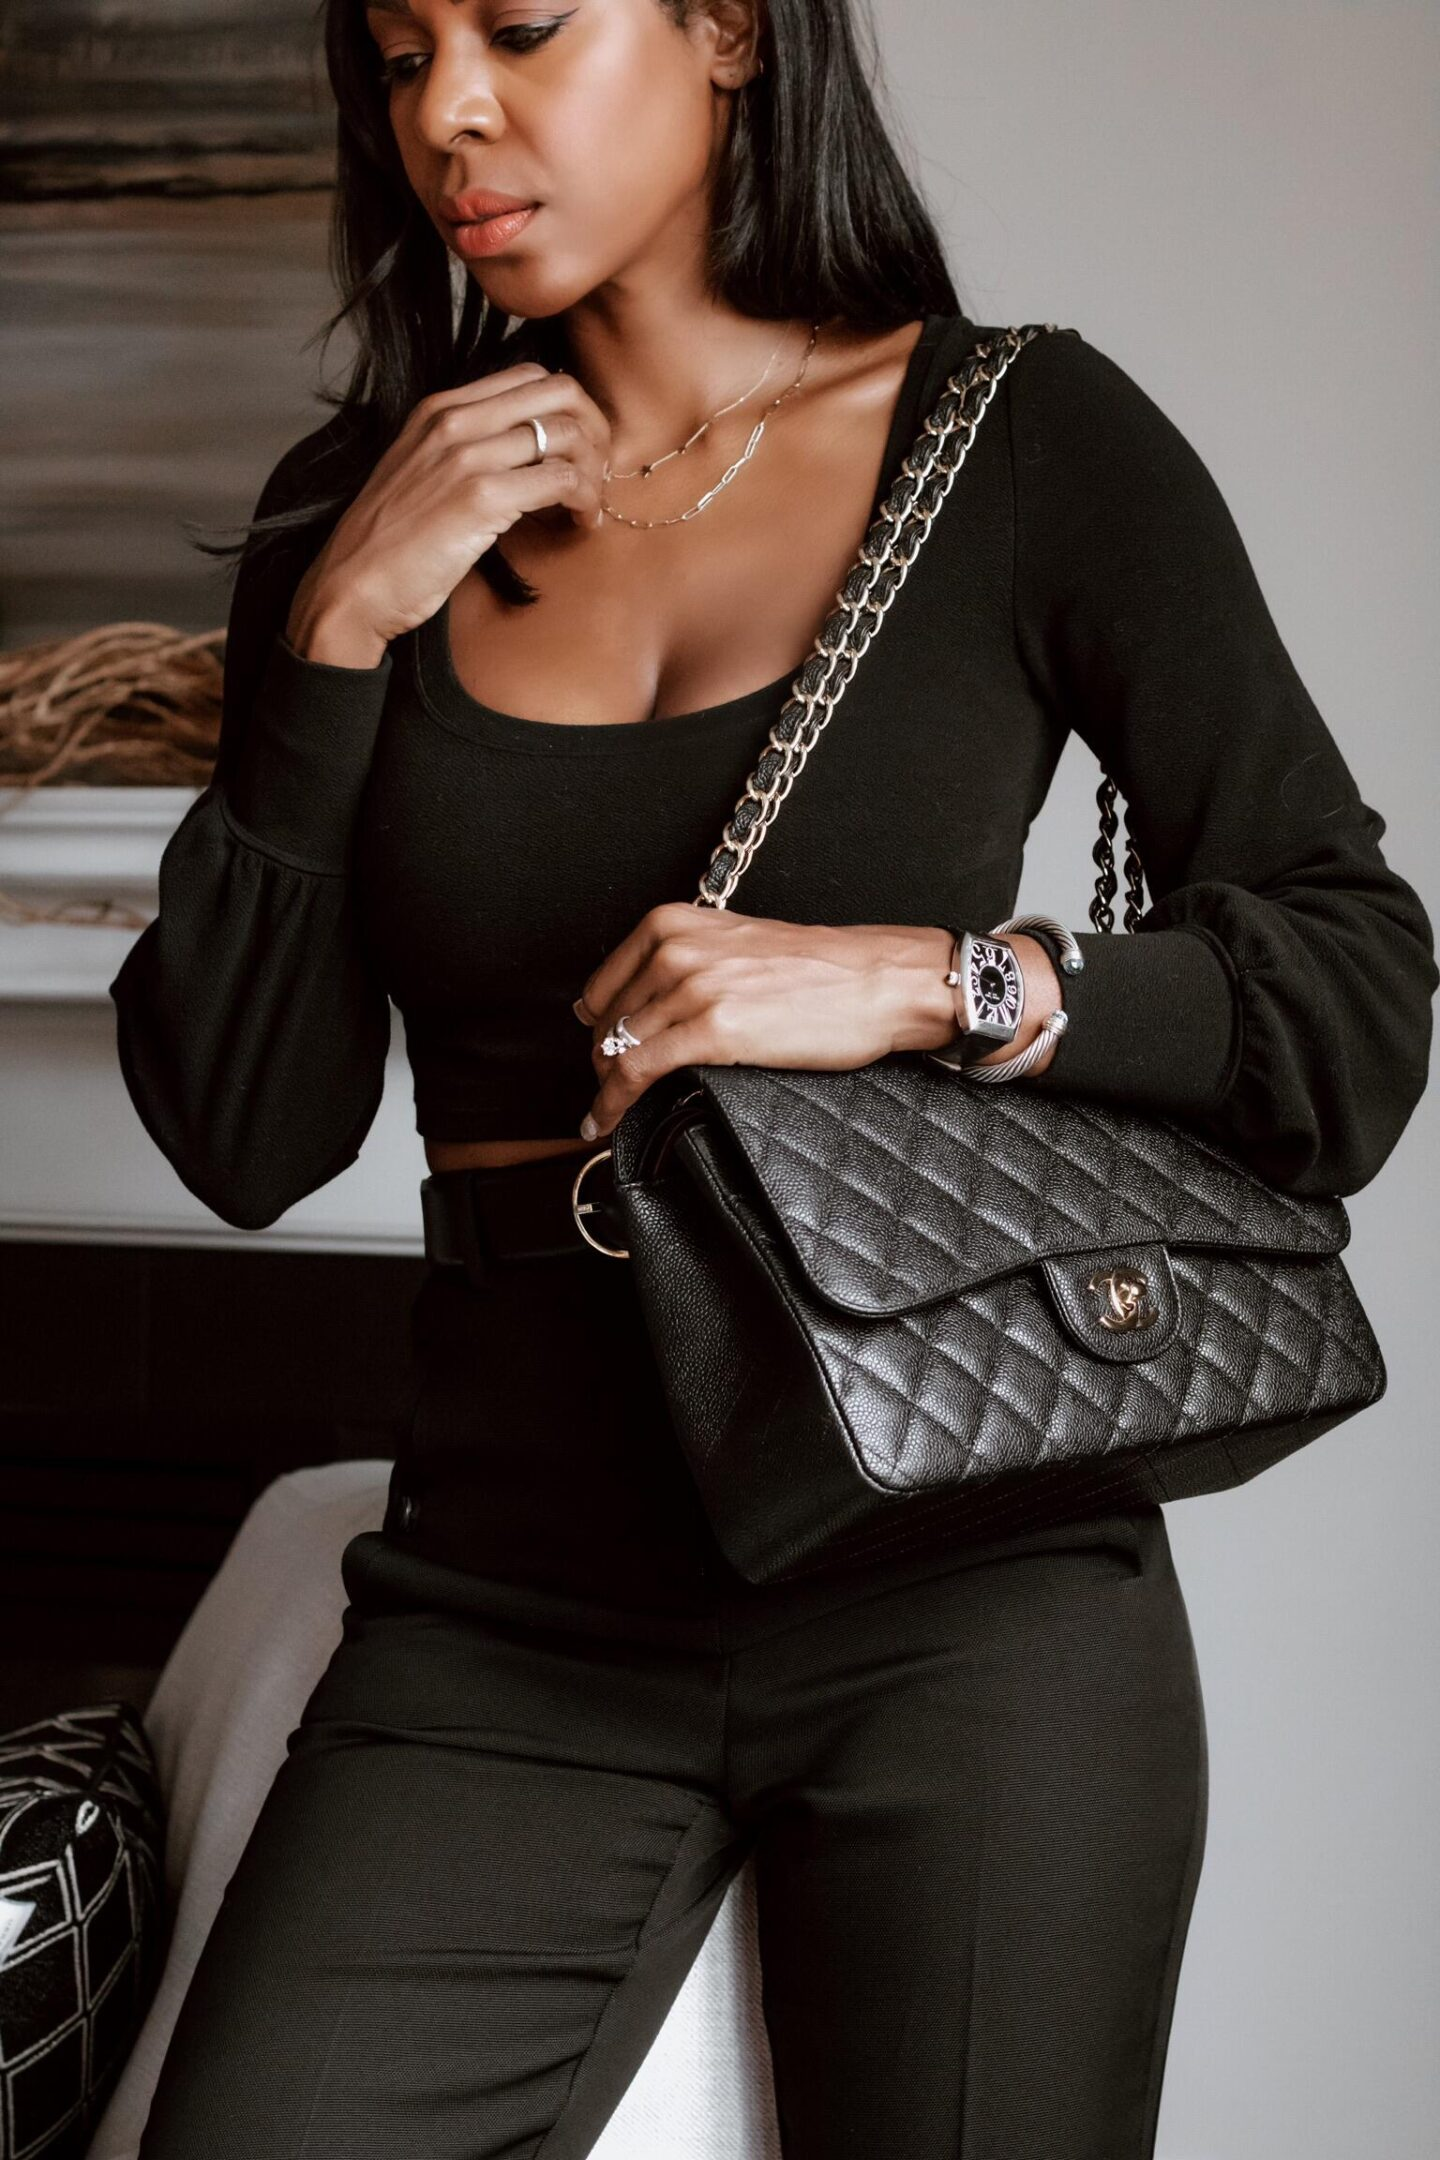 Close up of the Chanel Classic Flap Bag Jumbo size worn by Dominique Baker